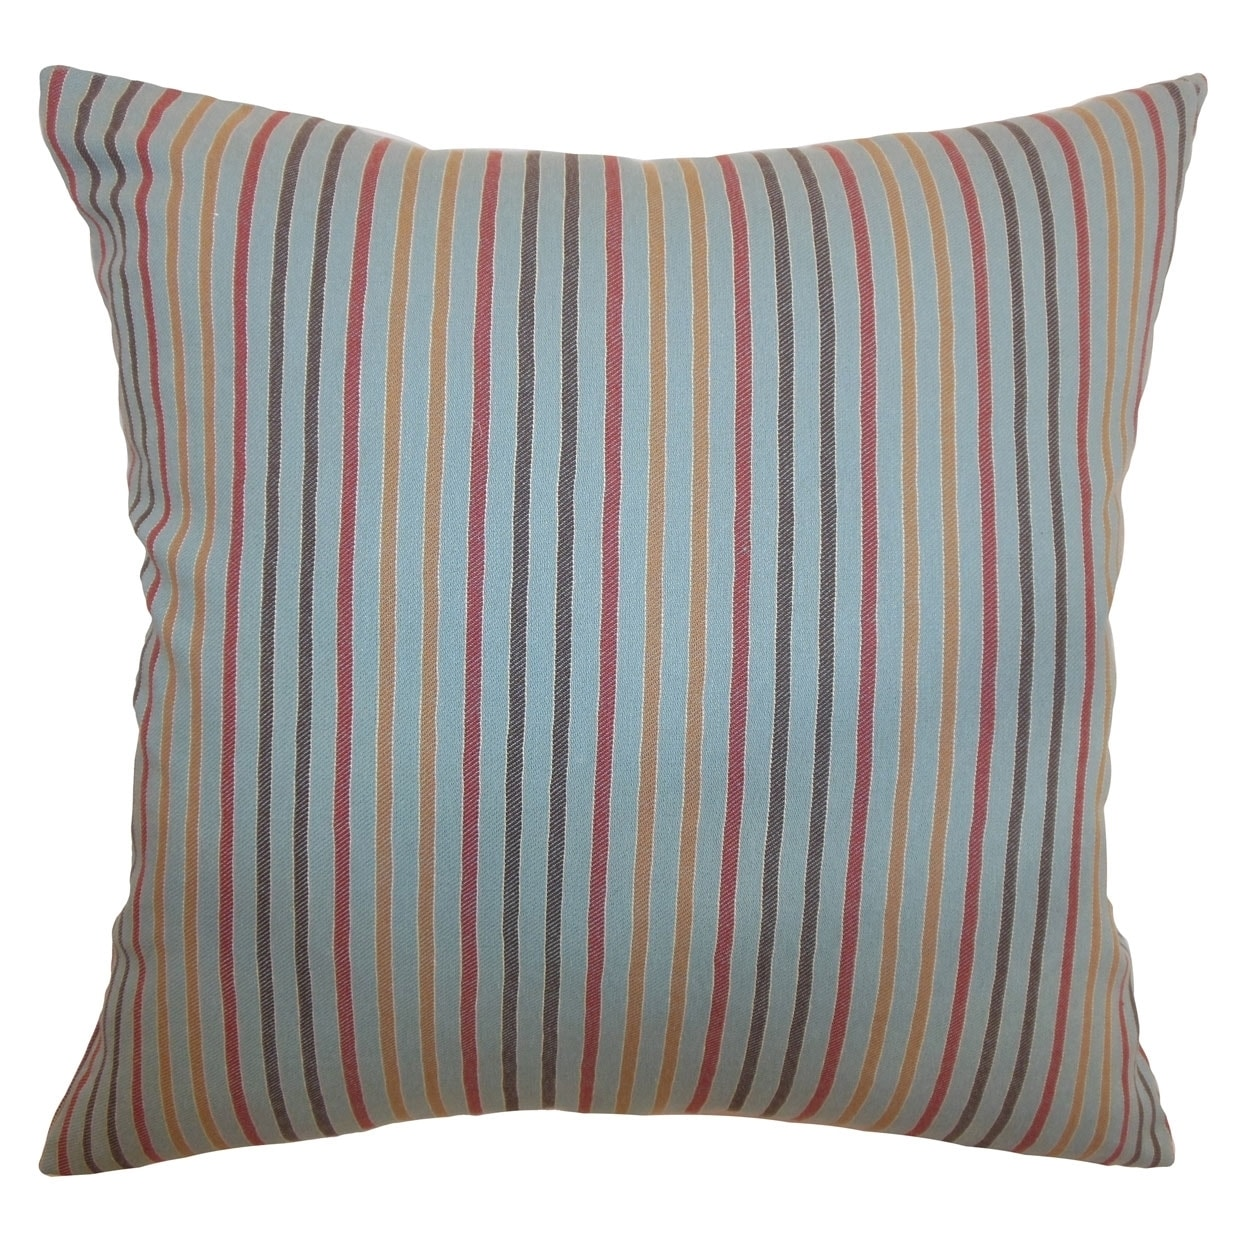 Lesly Blue and Grey Stripes 18-inch Feather and Down Filled Throw Pillow (Patterned)